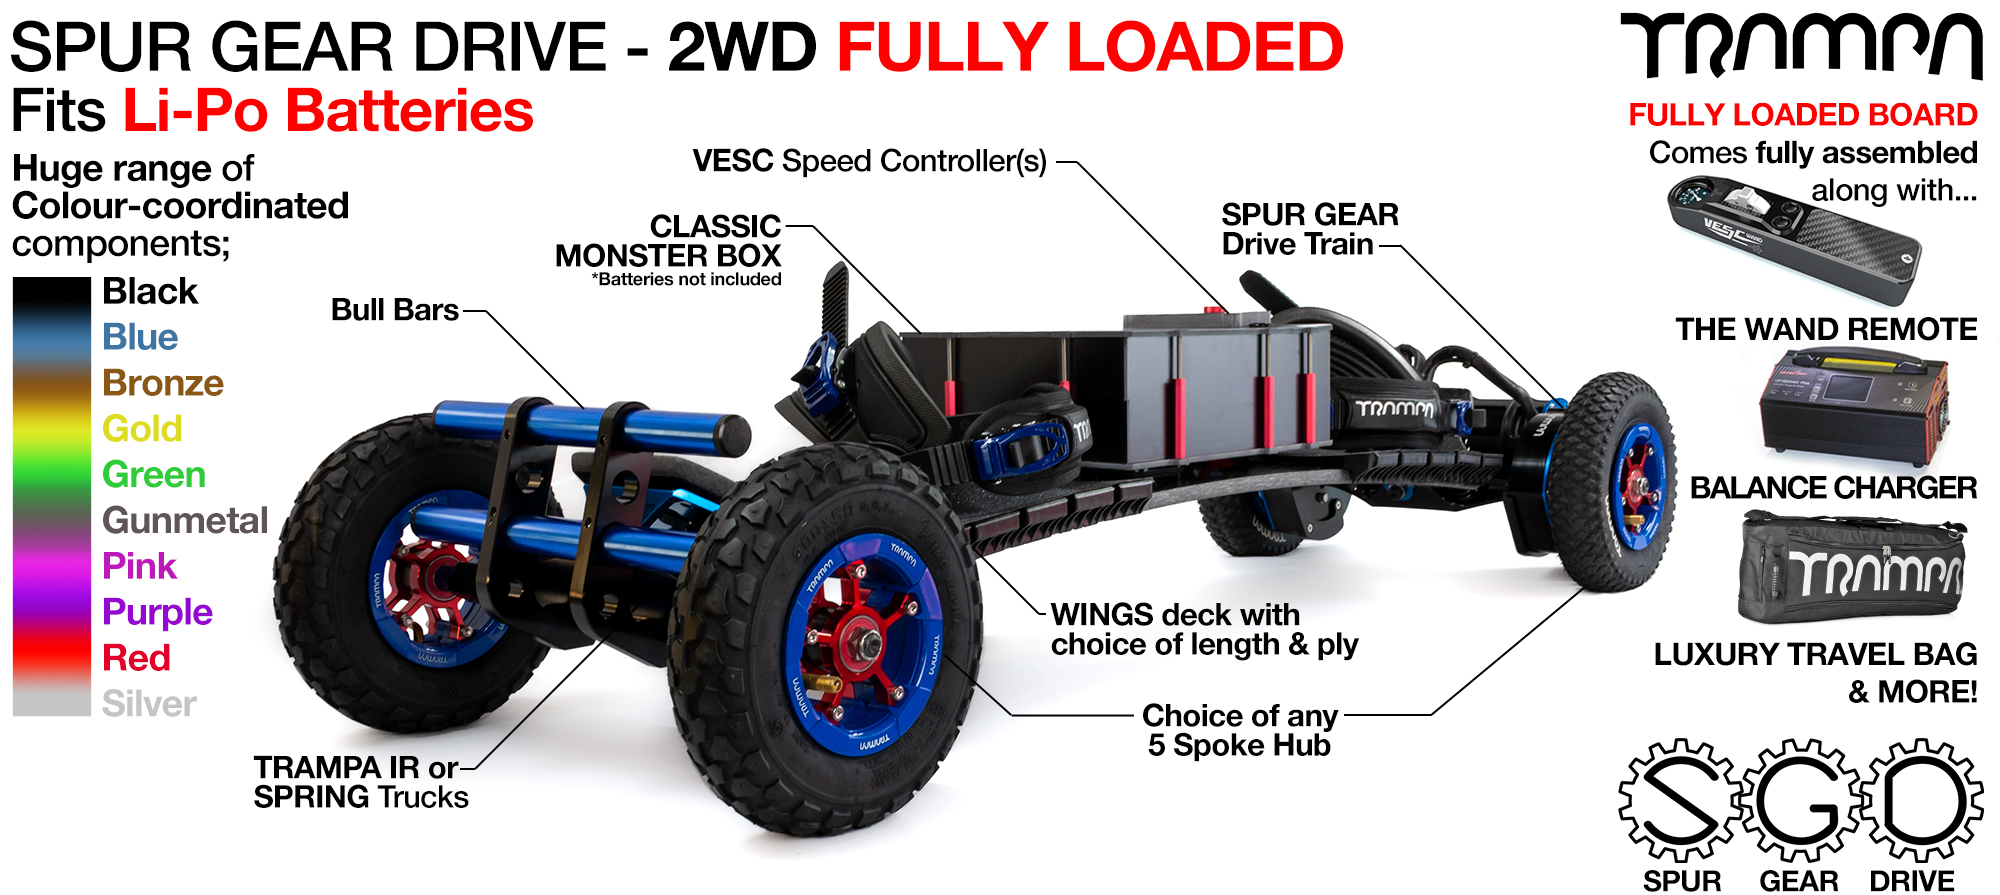 2WD SPUR GEAR DRIVE Electric Mountainboard - FULLY LOADED Li-Po supplied with The WAND, 15A Charger, Luxury Bag, assembled...